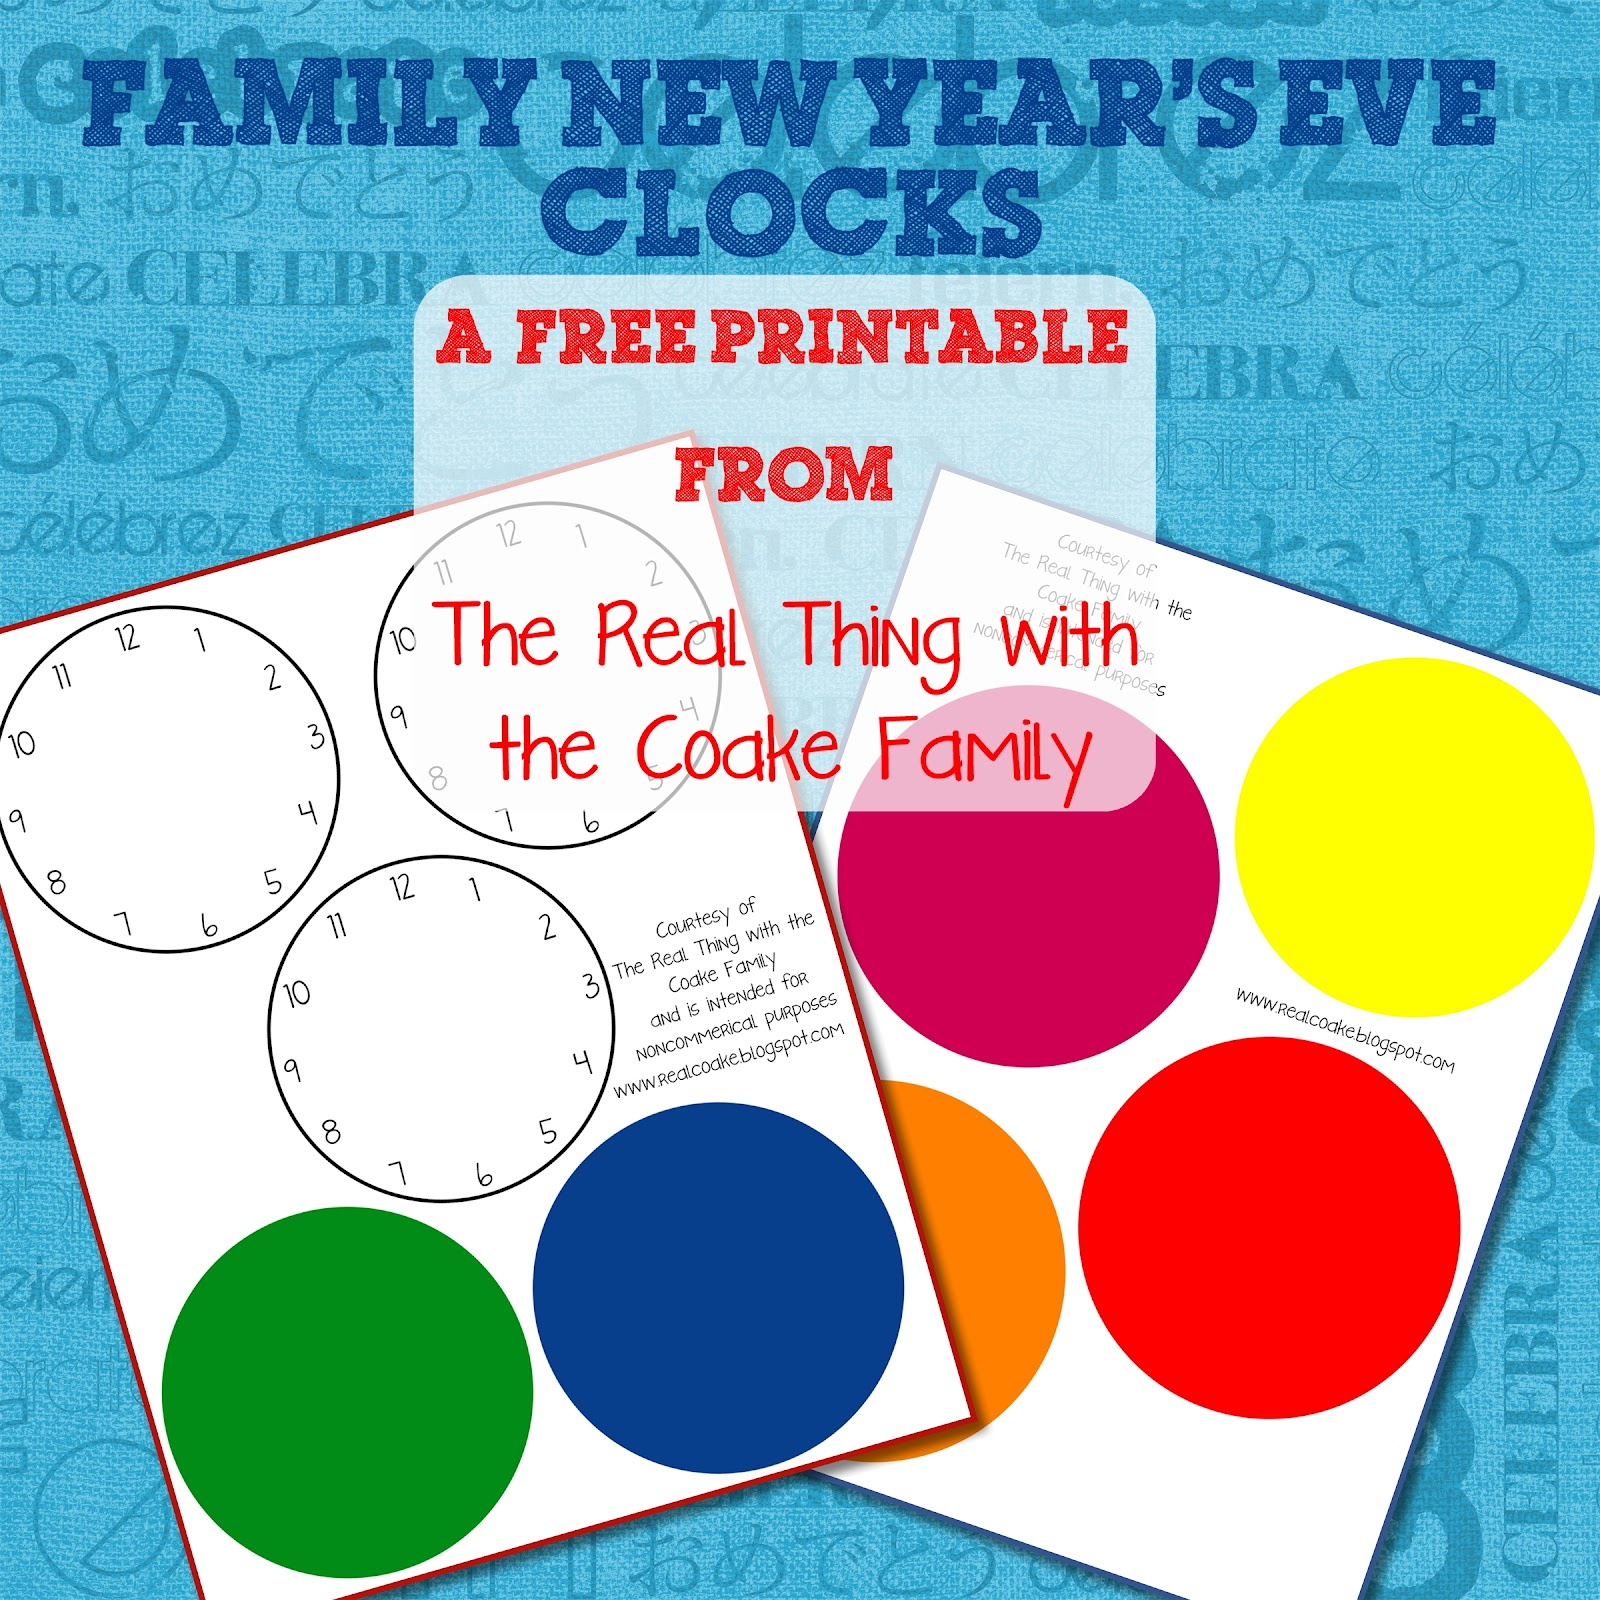 fun idea for a family new years eve celebration that whole family will enjoy